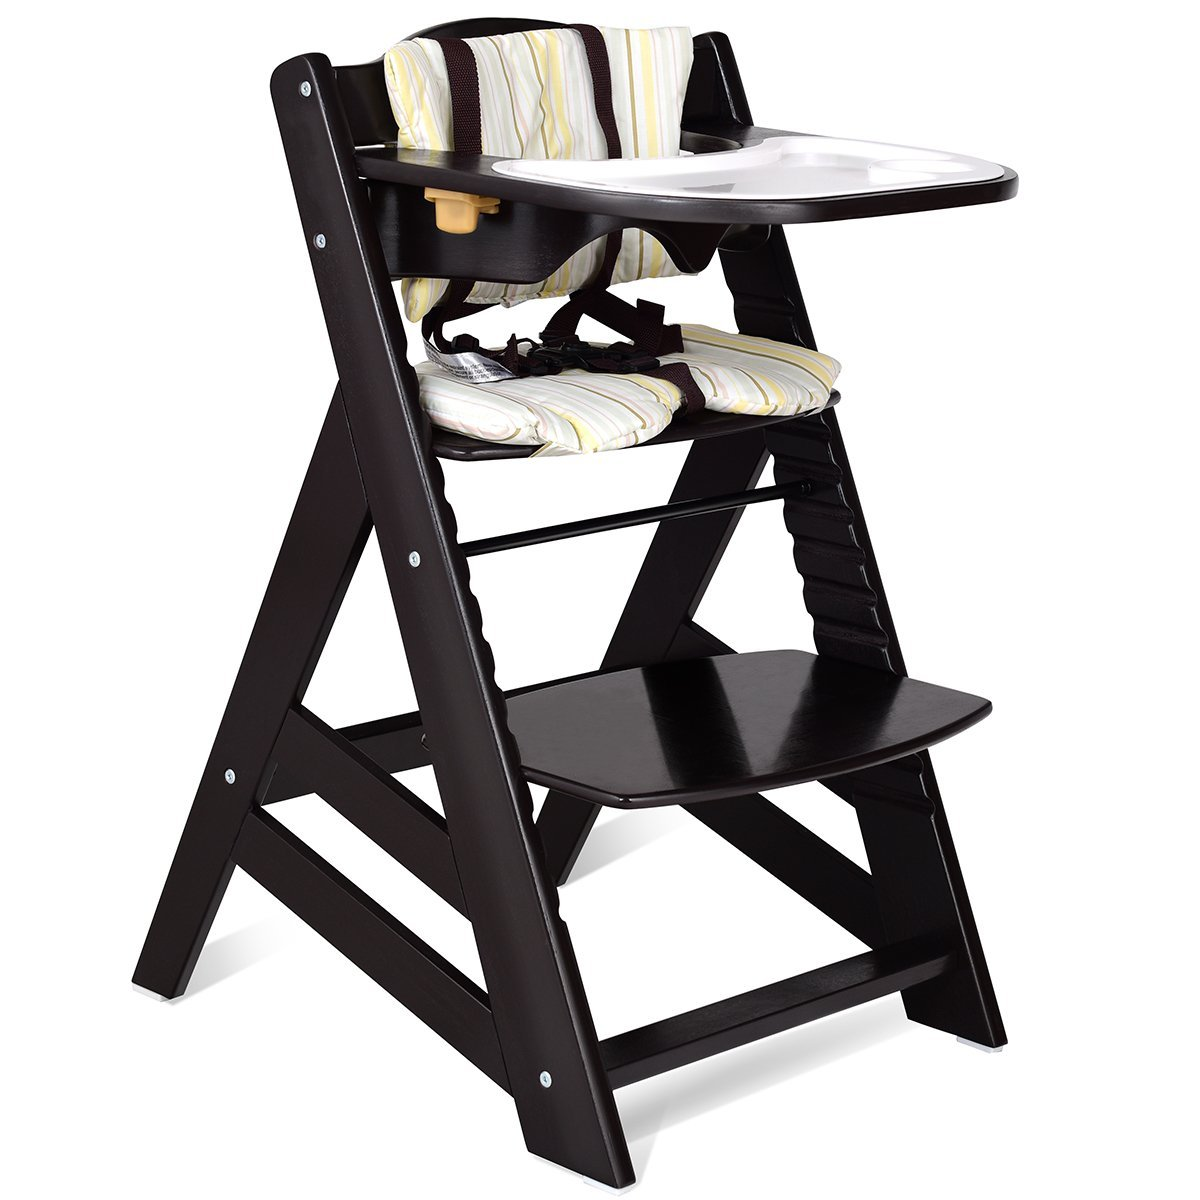 Costzon Wooden Highchair, Baby Dining Chair with Adjustable Height, Removable Tray, 5-Point Safety Harness, Padded Cushion, Perfect Toddlers Feeding Chair